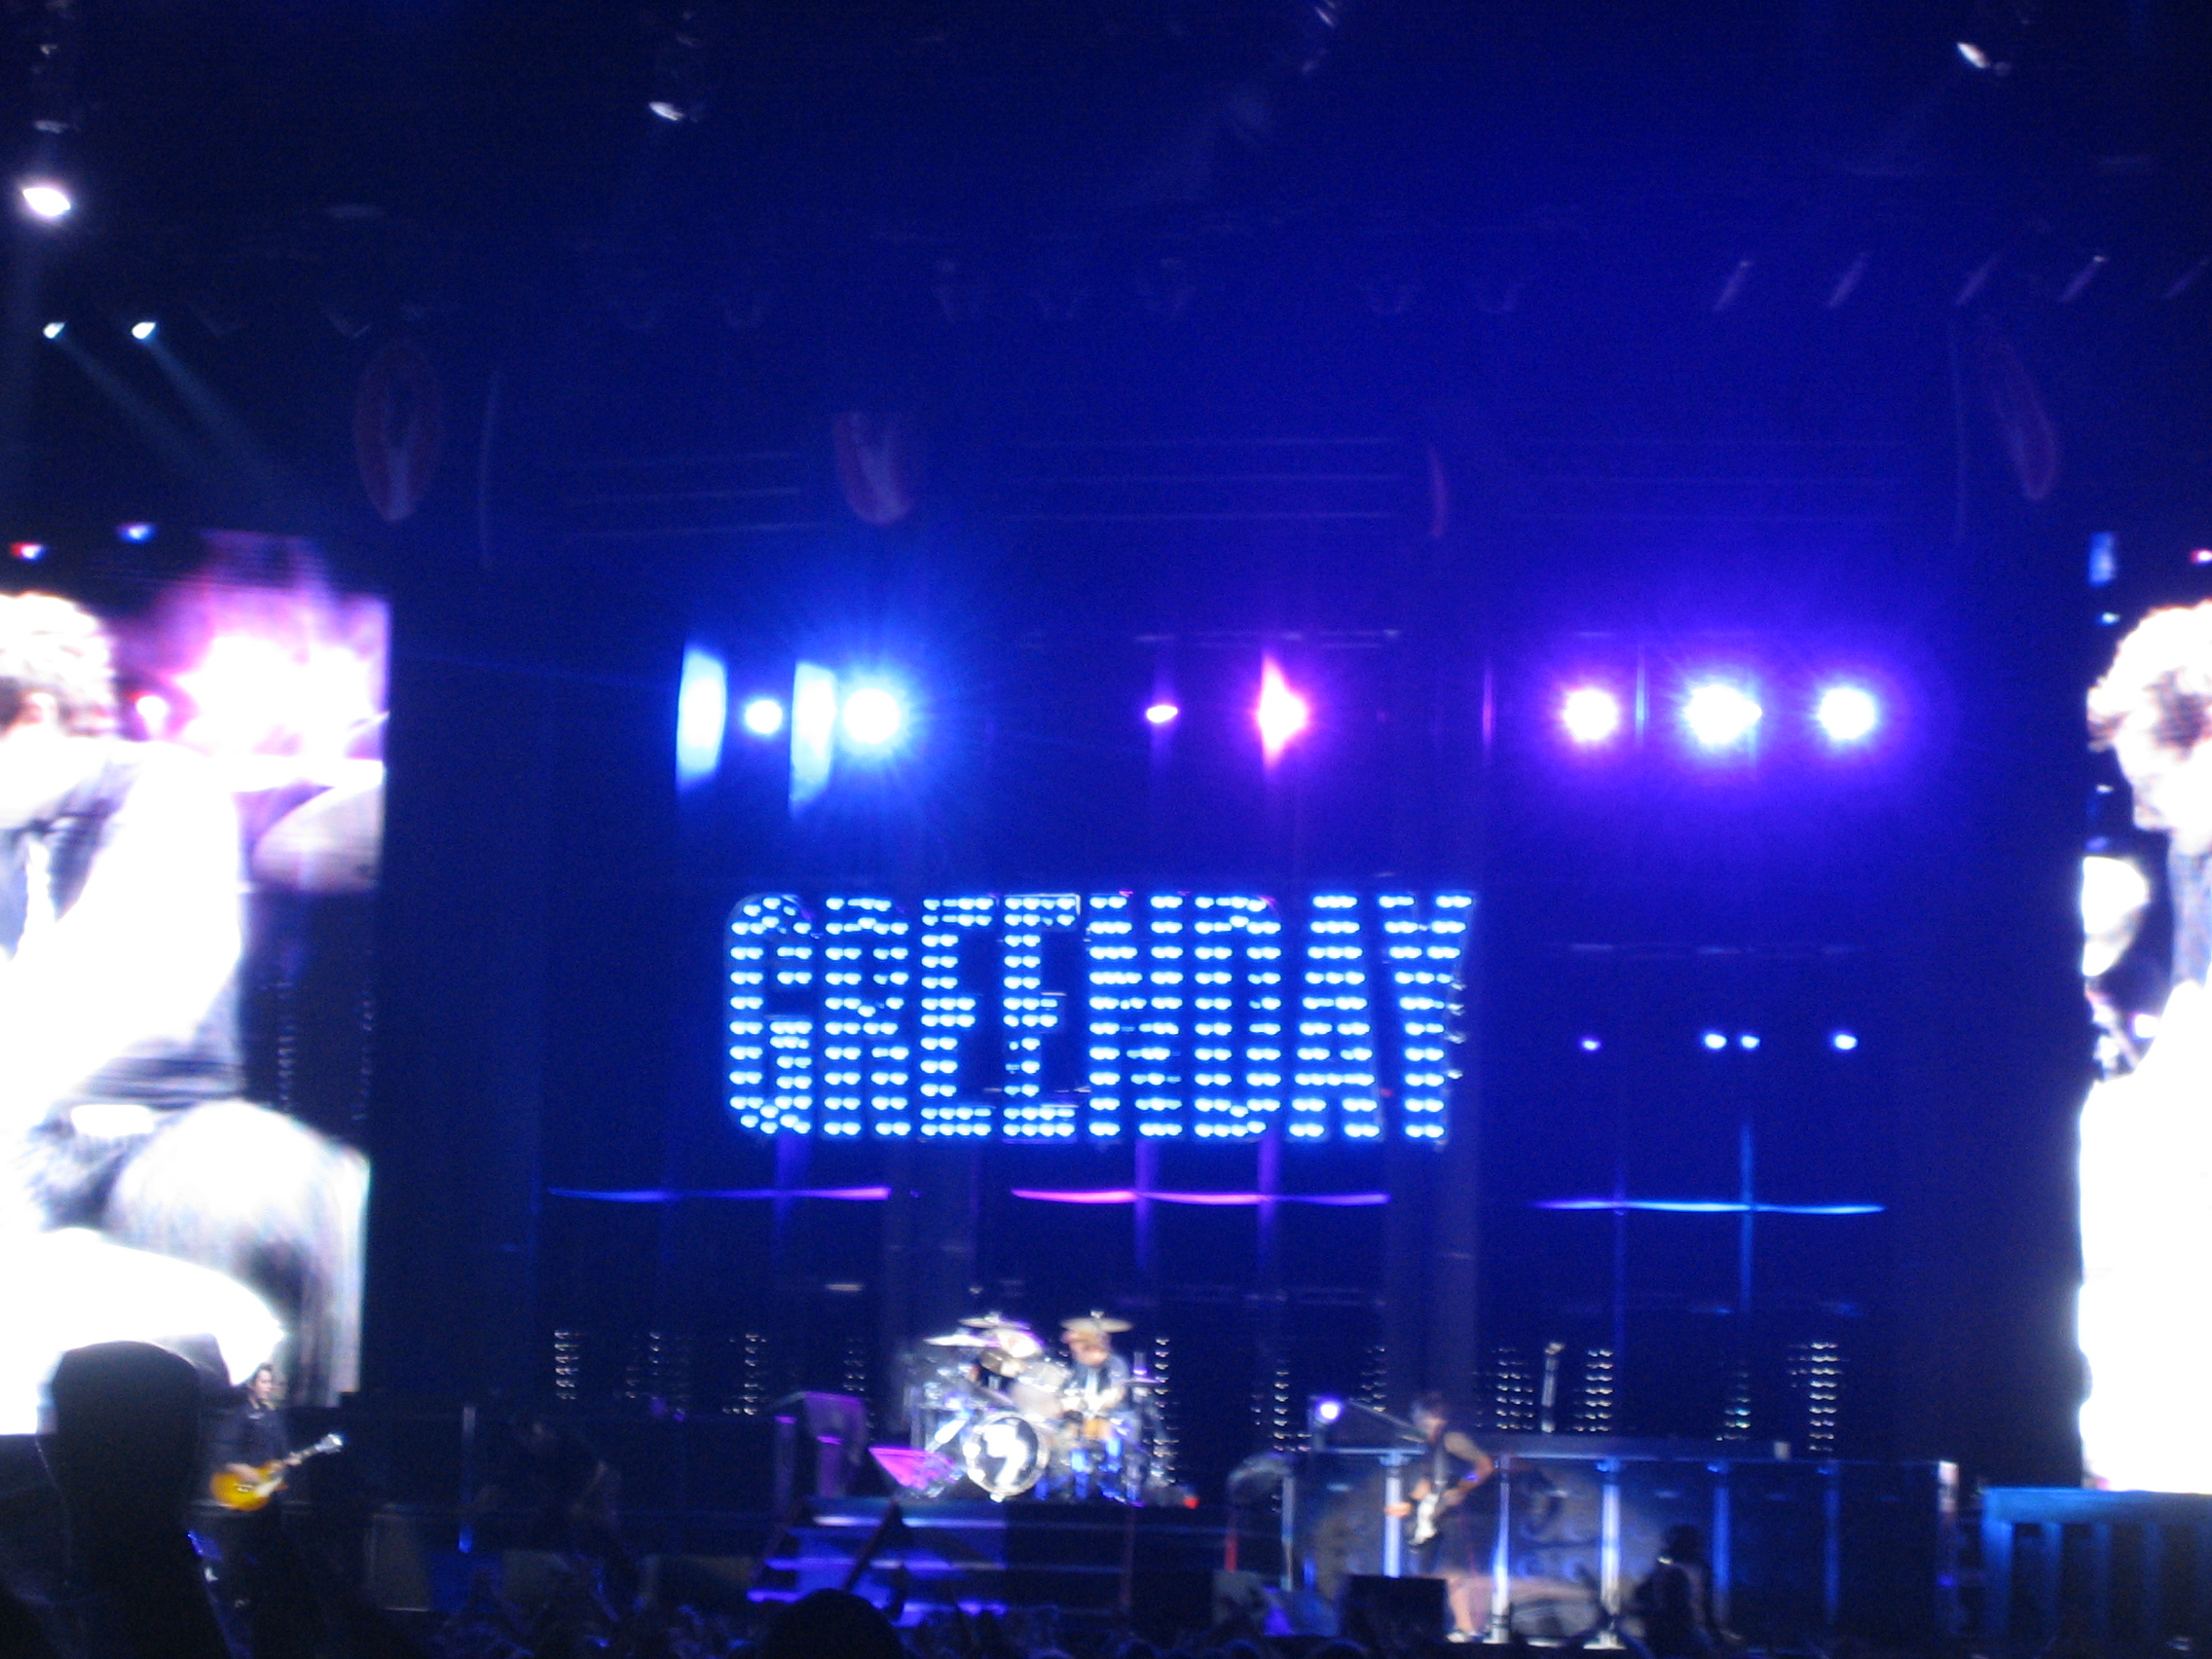 http://upload.wikimedia.org/wikipedia/commons/a/aa/Green_Day_in_concert.jpg